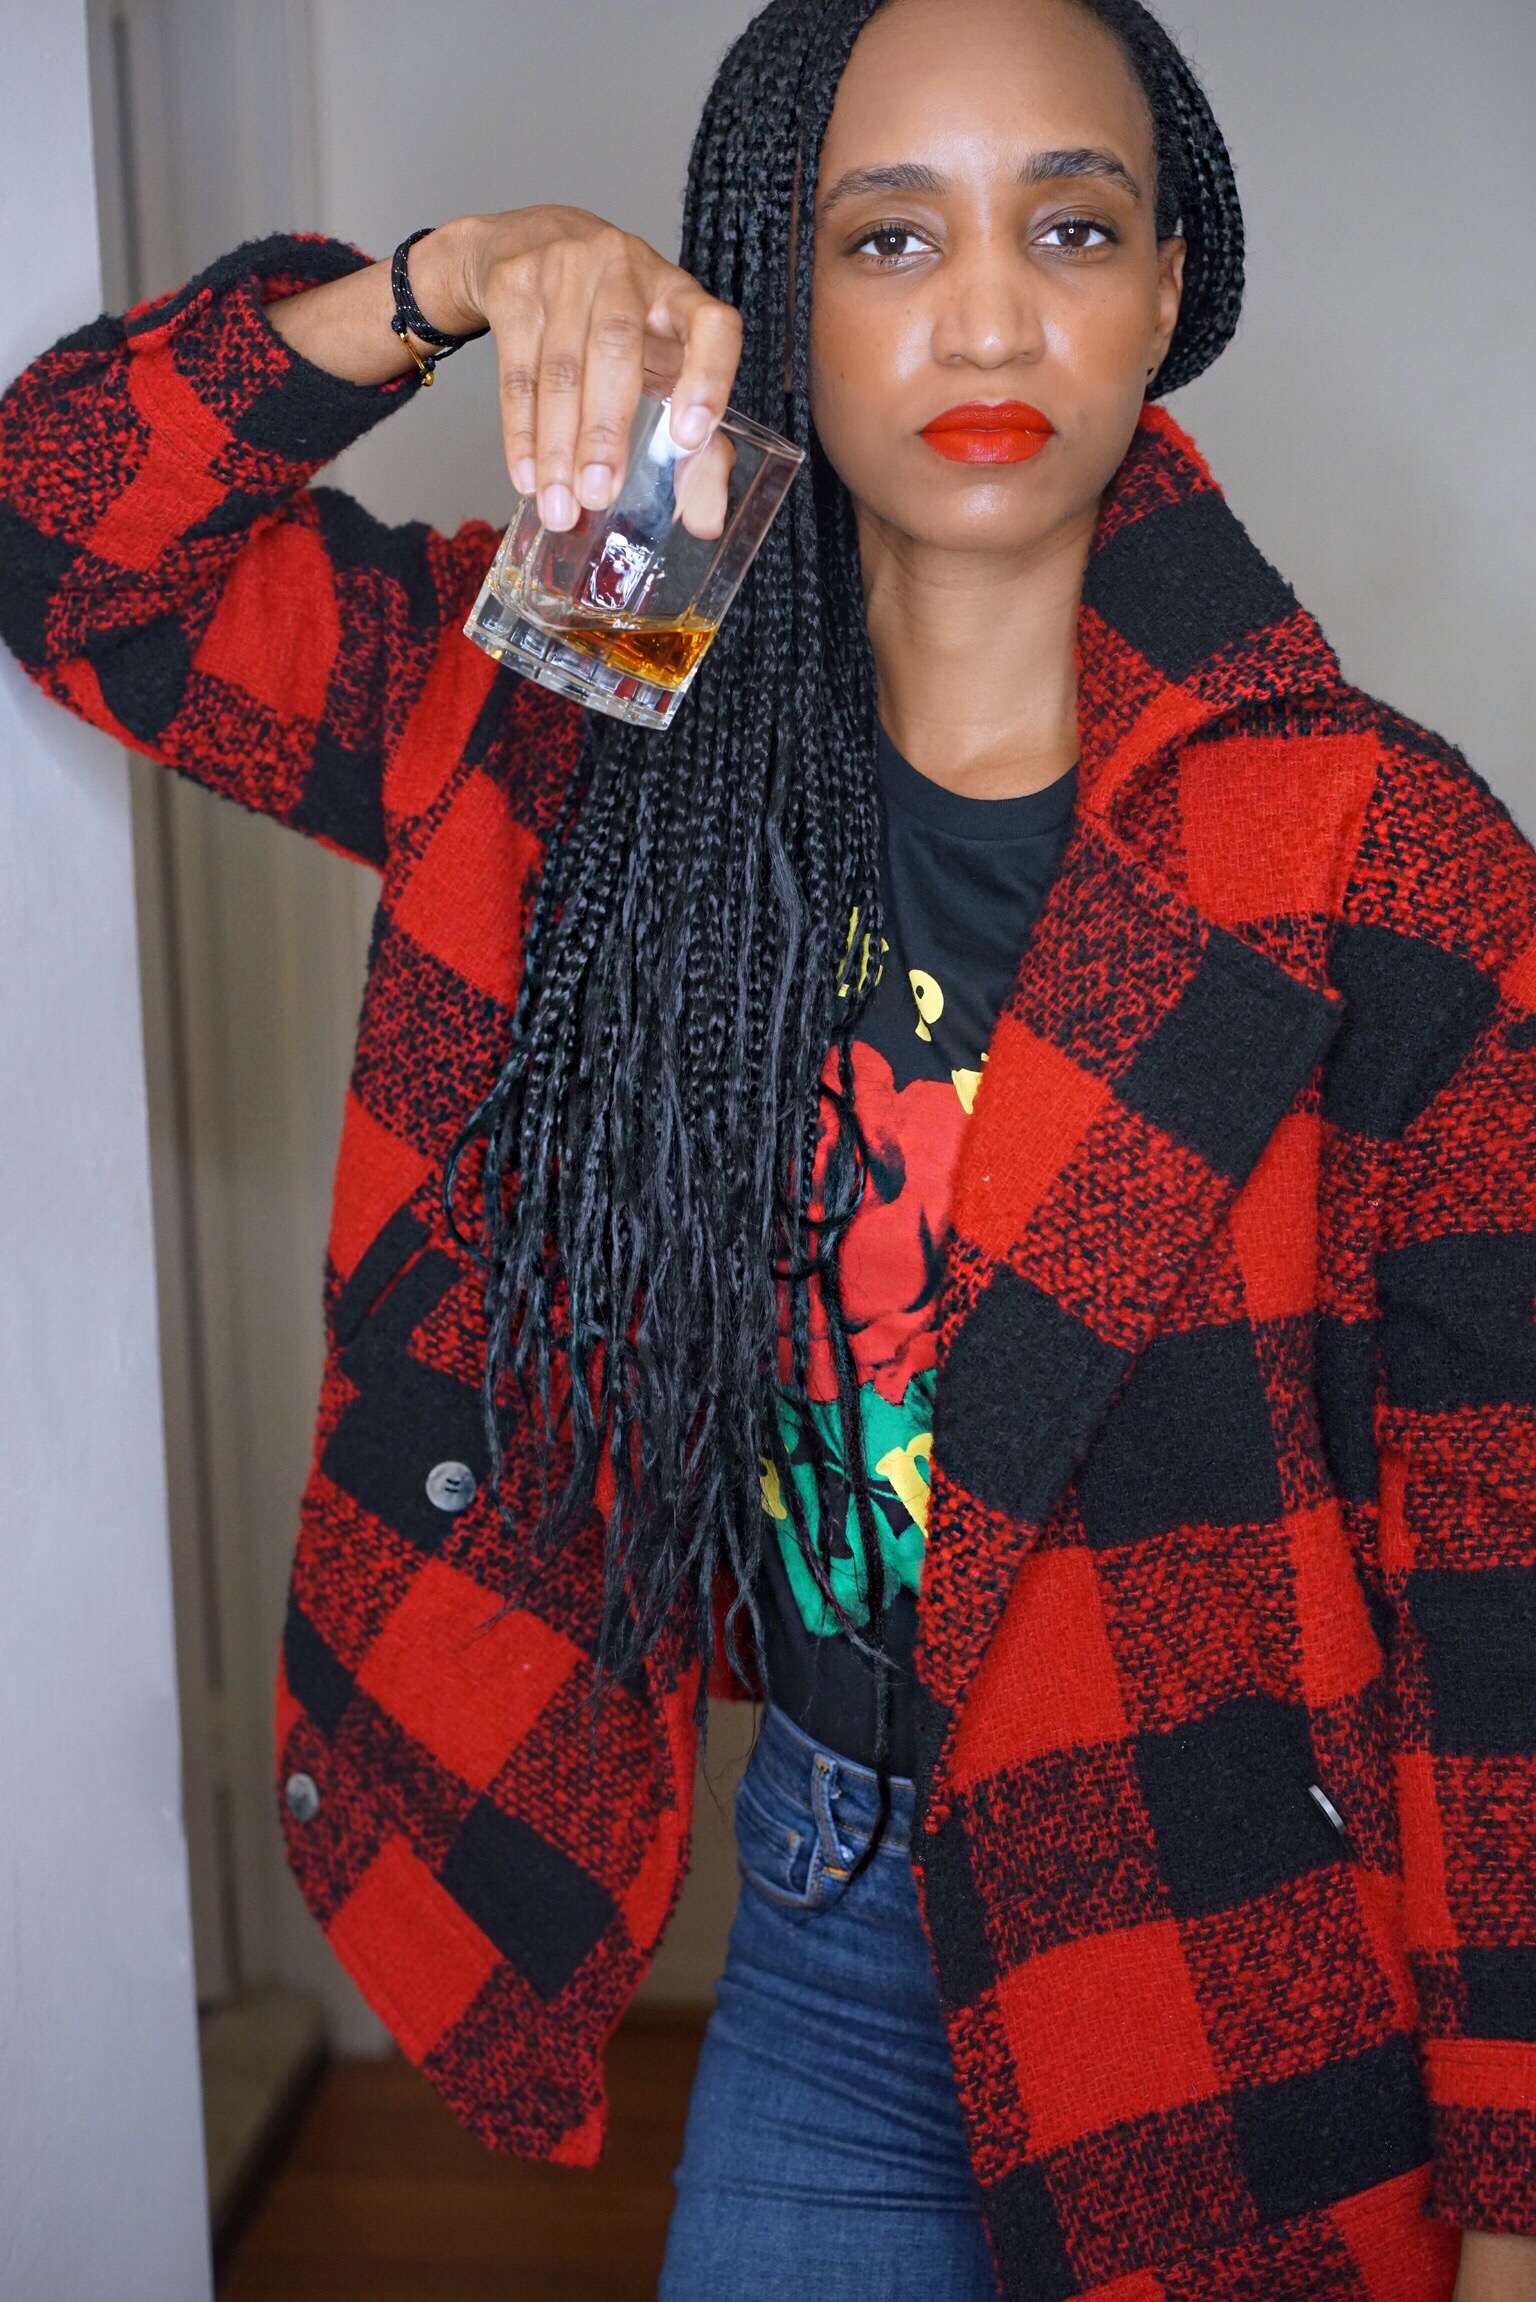 christine_the_style_d_affaire_the_style_club_shirt_lagence_ jeans_timberland_boots_fenty_beauty_rihanna_lipstick.jpg